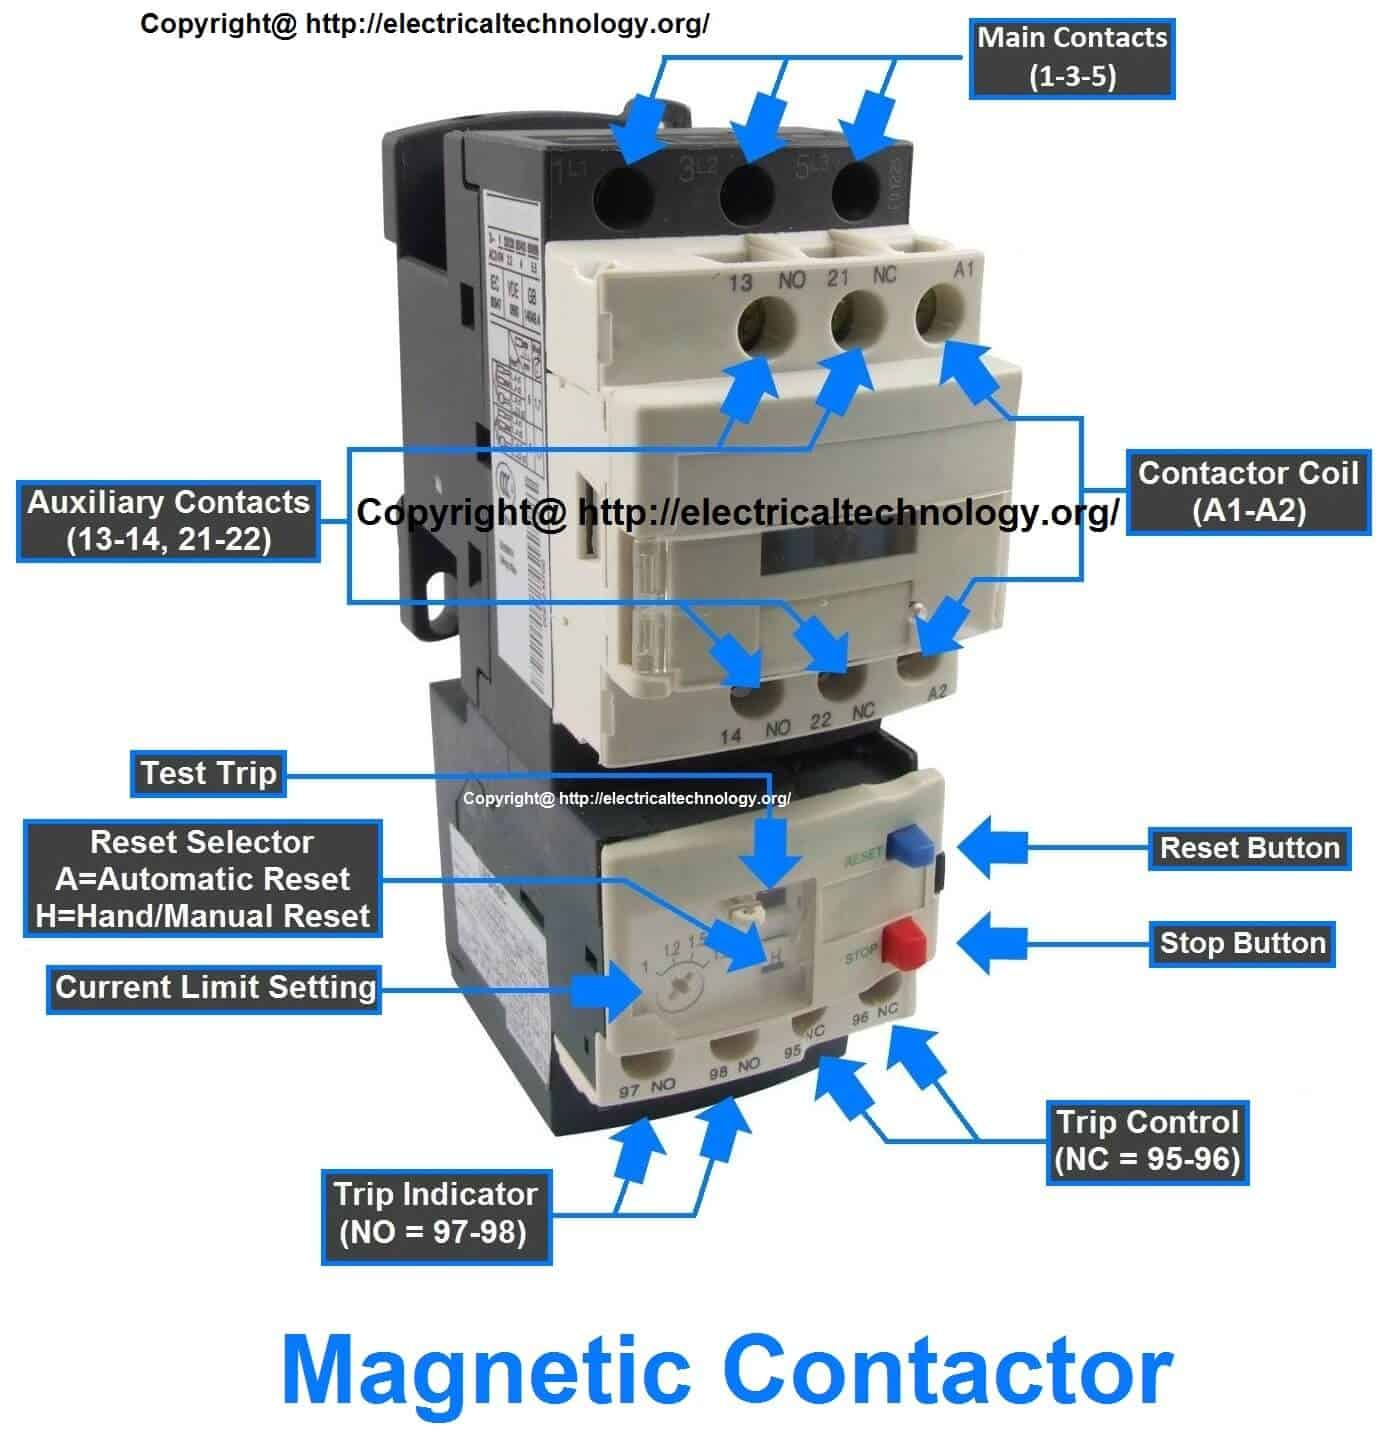 Contactor Relay Wiring Unlimited Access To Diagram Electrical Pdf What Is Magnetic Contactors Rh Electricaltechnology Org Ac Circuit